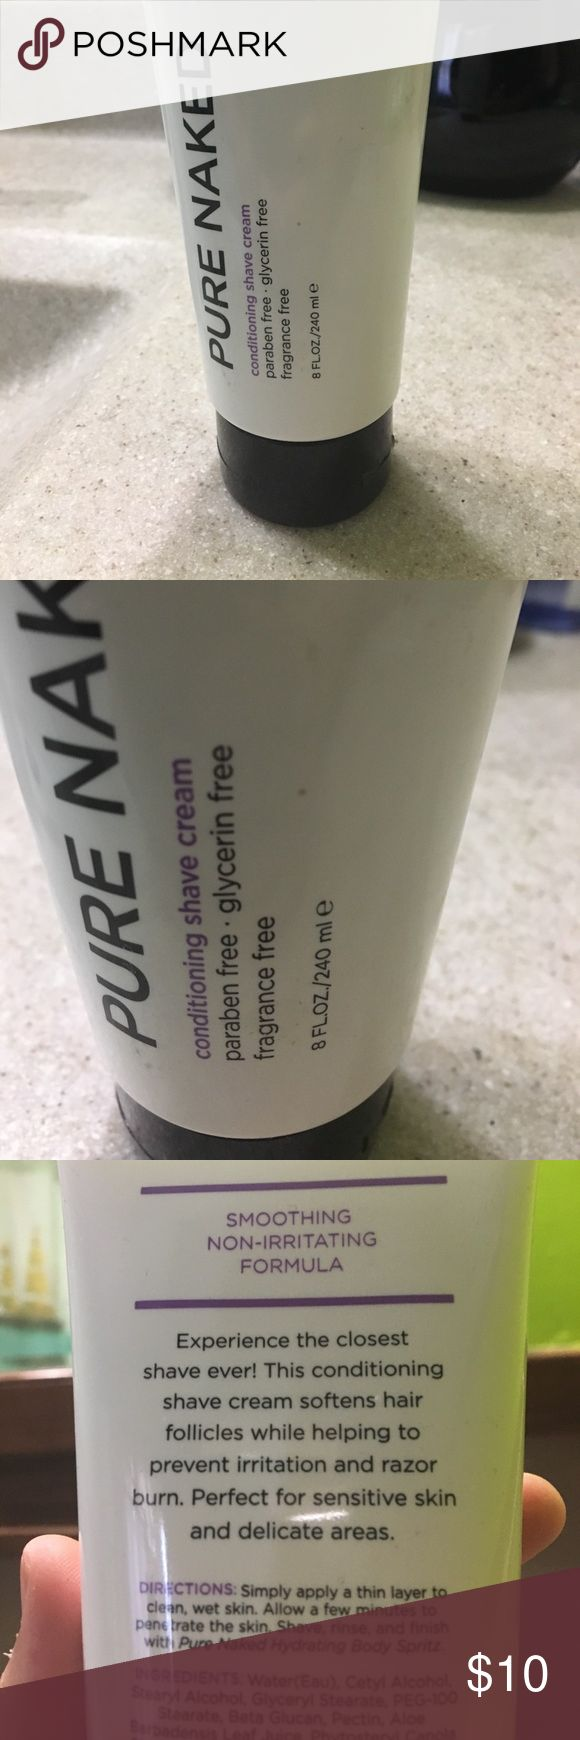 Pure Naked All Natural Conditioning Shave Cream This makes legs super soft after shaving (or whatever you shave 😊). It's never been used! Makeup